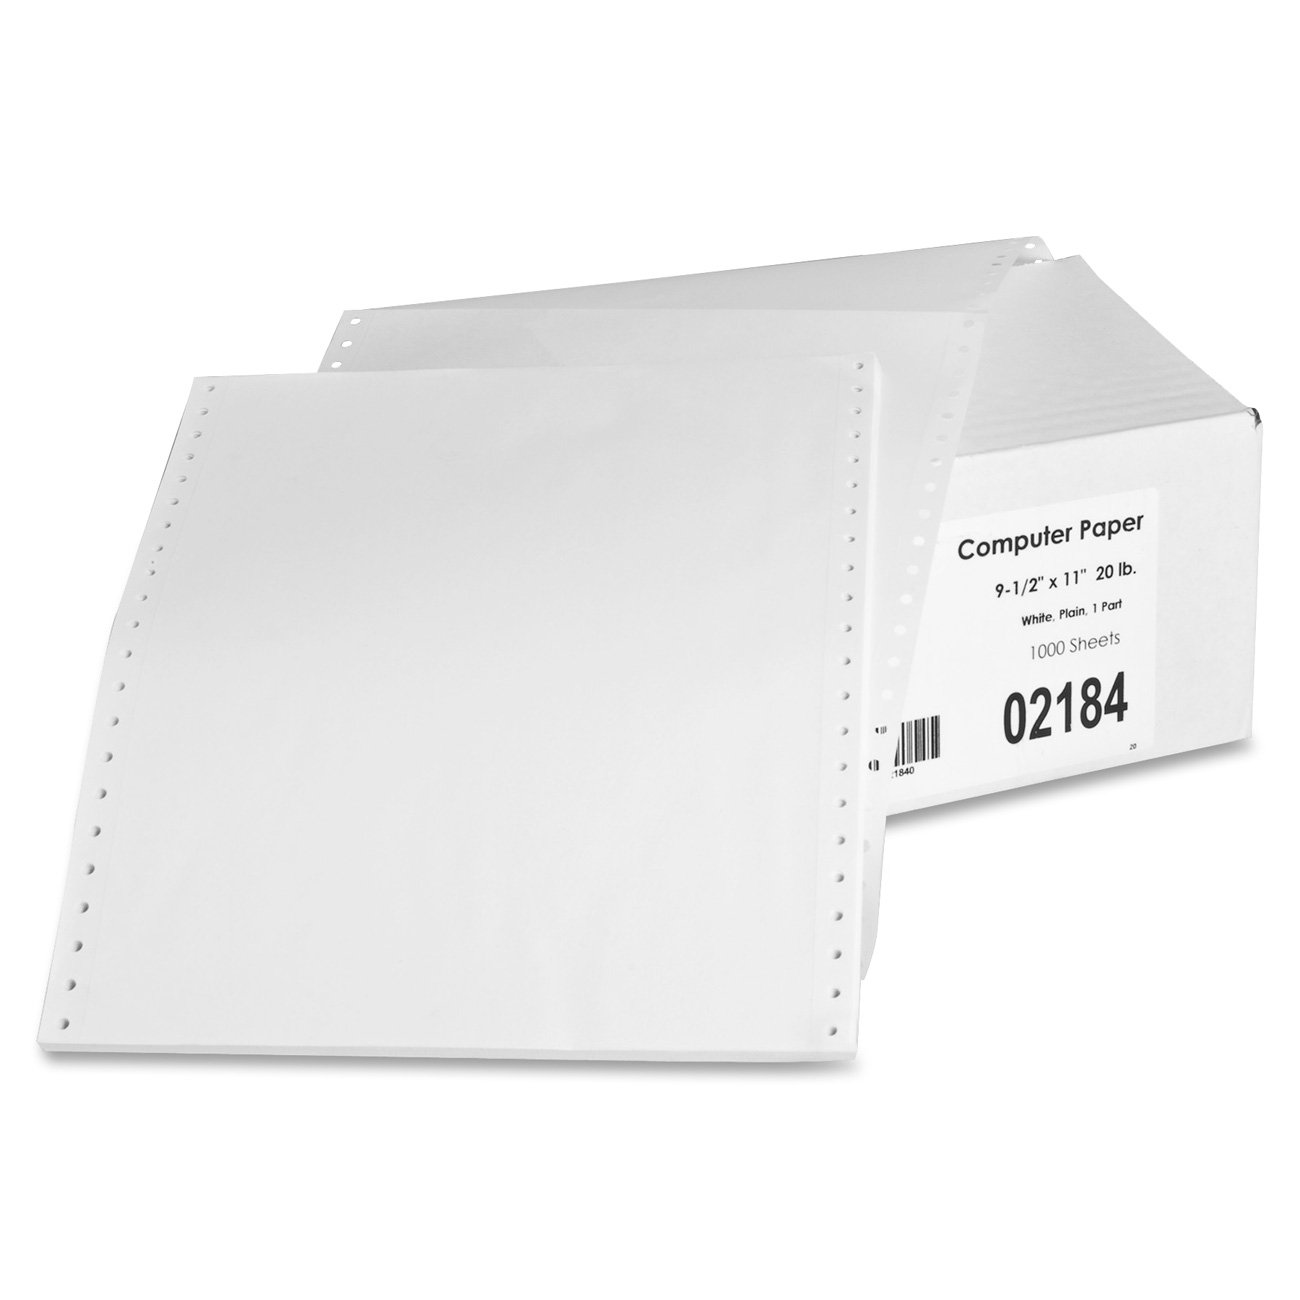 Sparco Feed Paper, Continuous, Plain, 1-Part, 9.5 x 11 Inches, with perforations  1000/Count, WE by Sparco